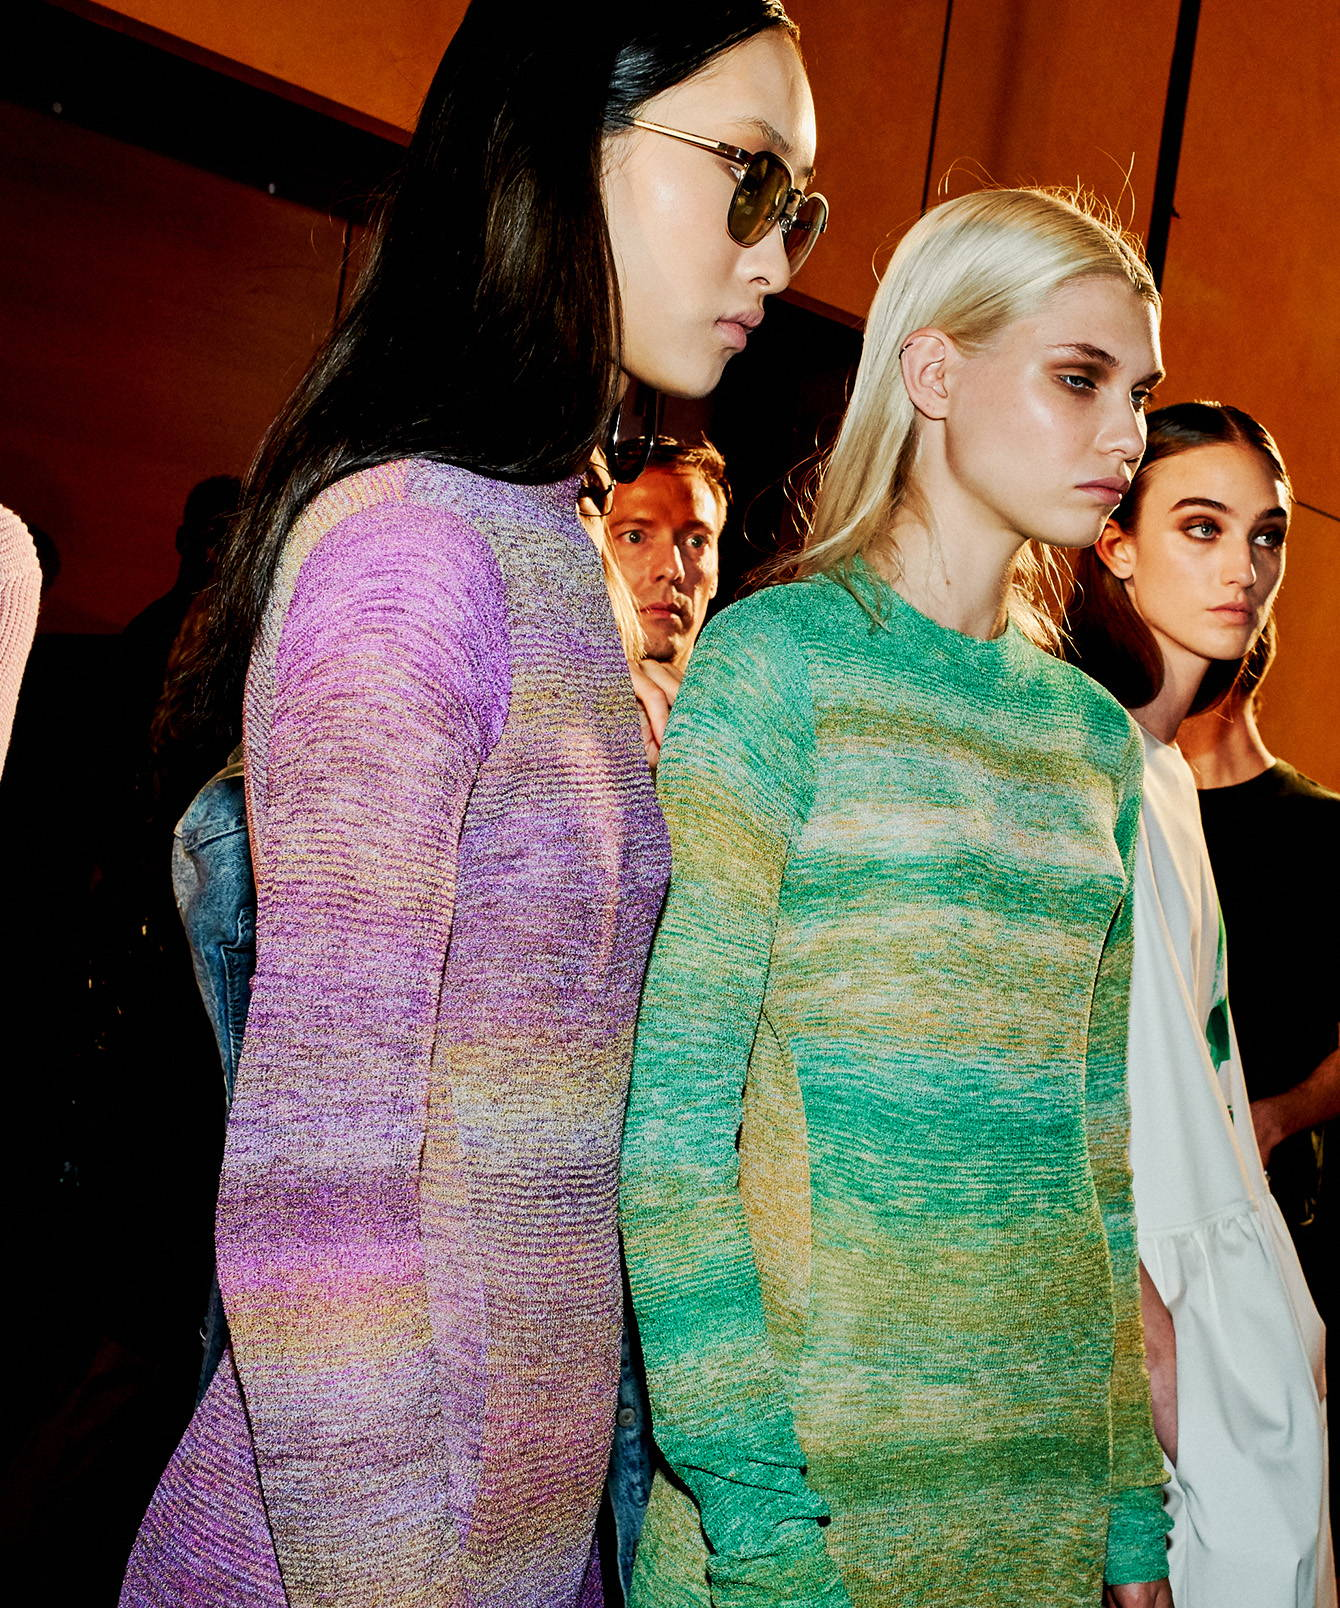 Image of models backstage looking away from the camera. Models are wearing matching knit dresses.